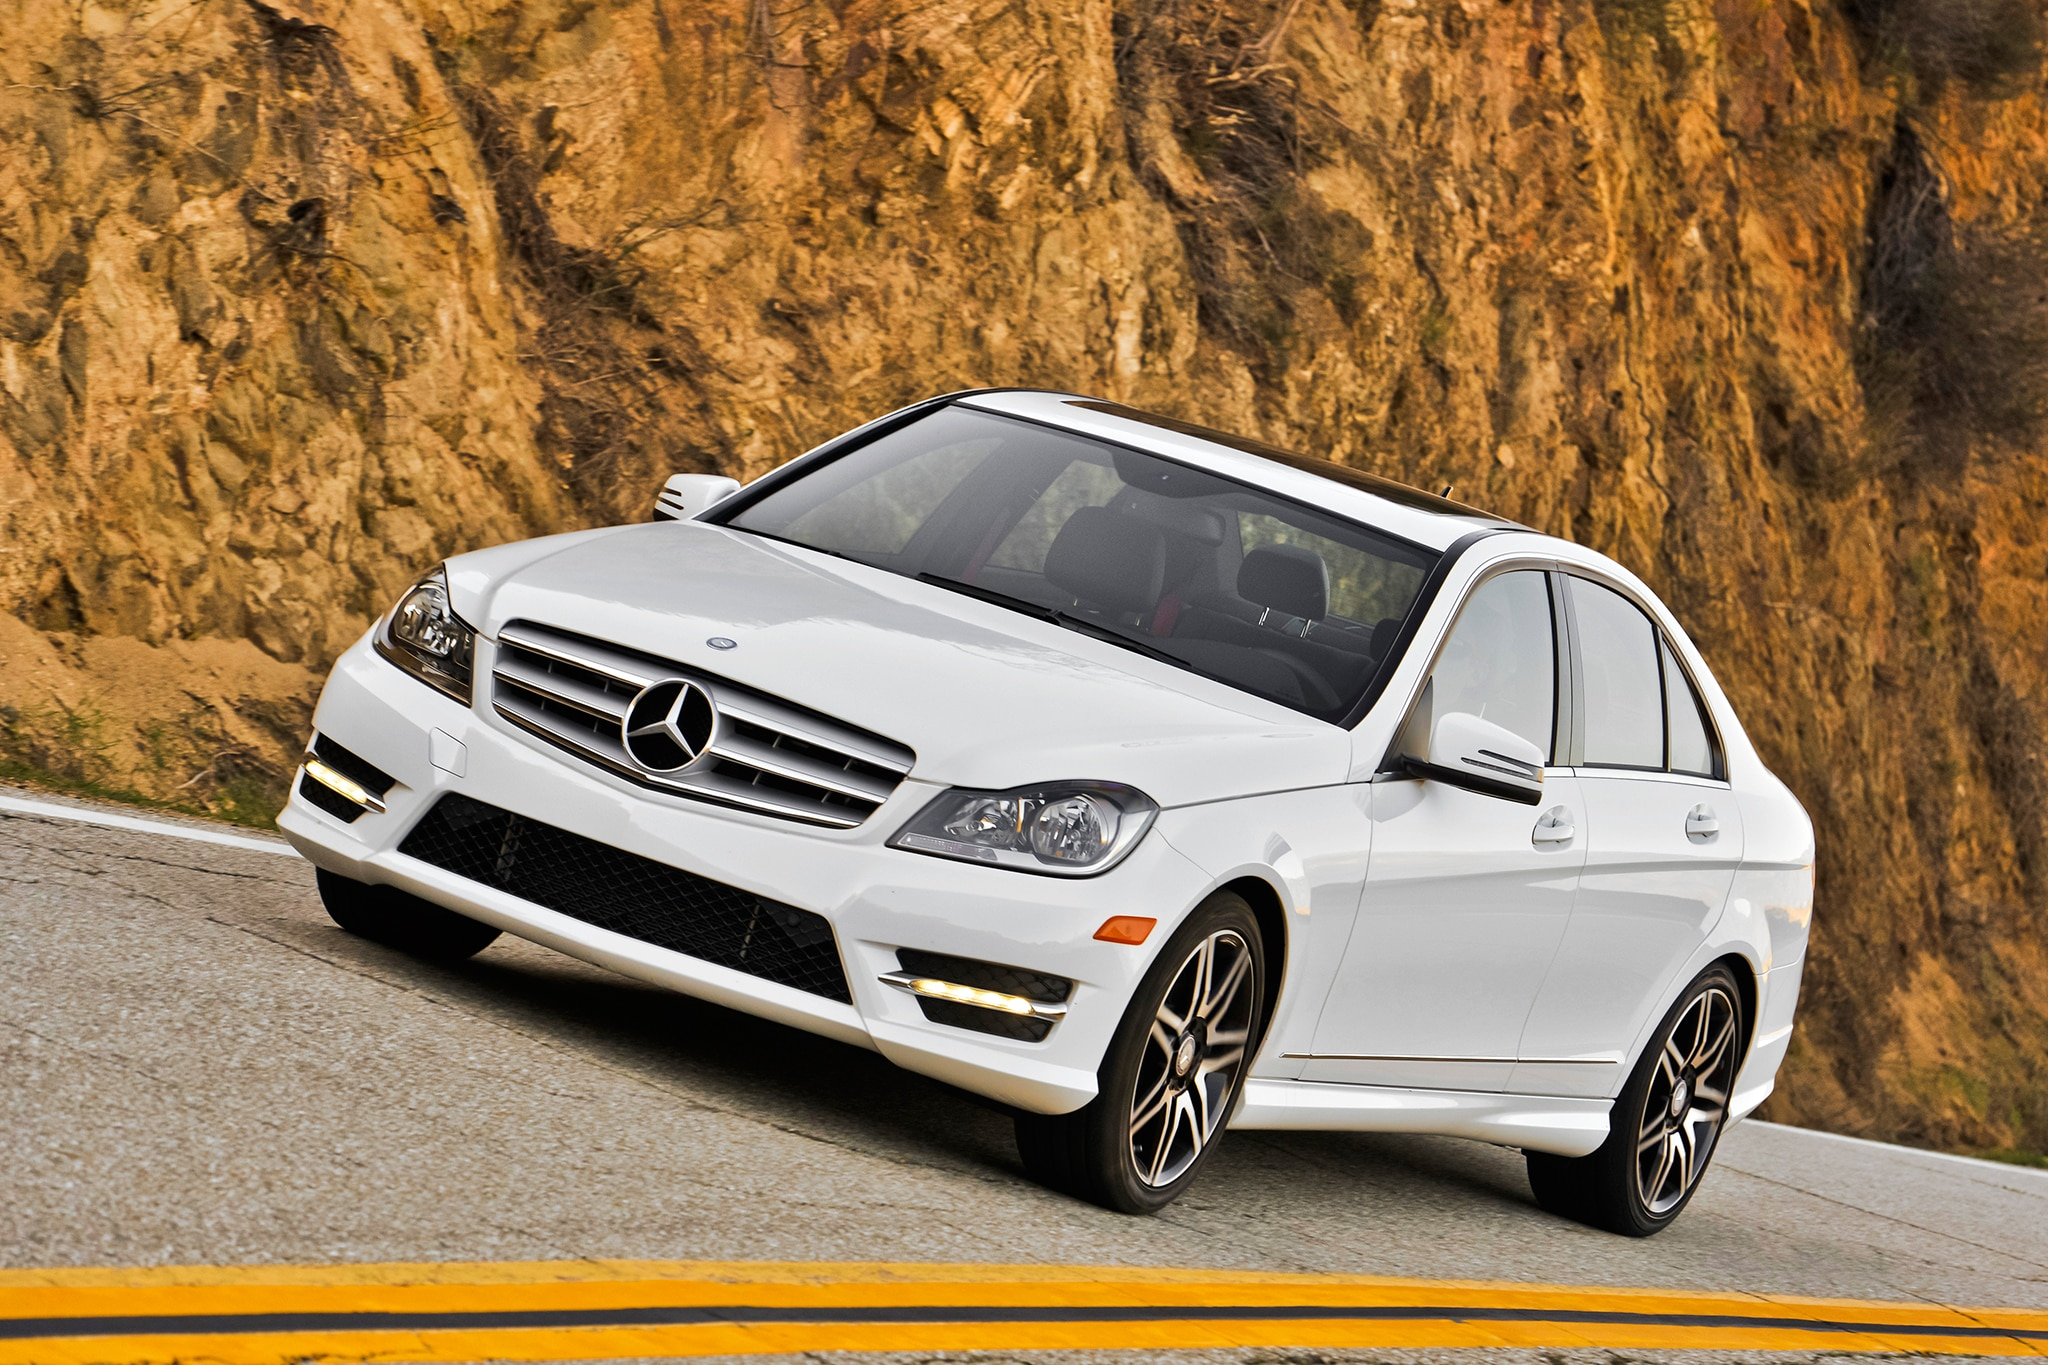 2013 14 mercedes benz c300 4matic fuel economy revised by epa. Cars Review. Best American Auto & Cars Review